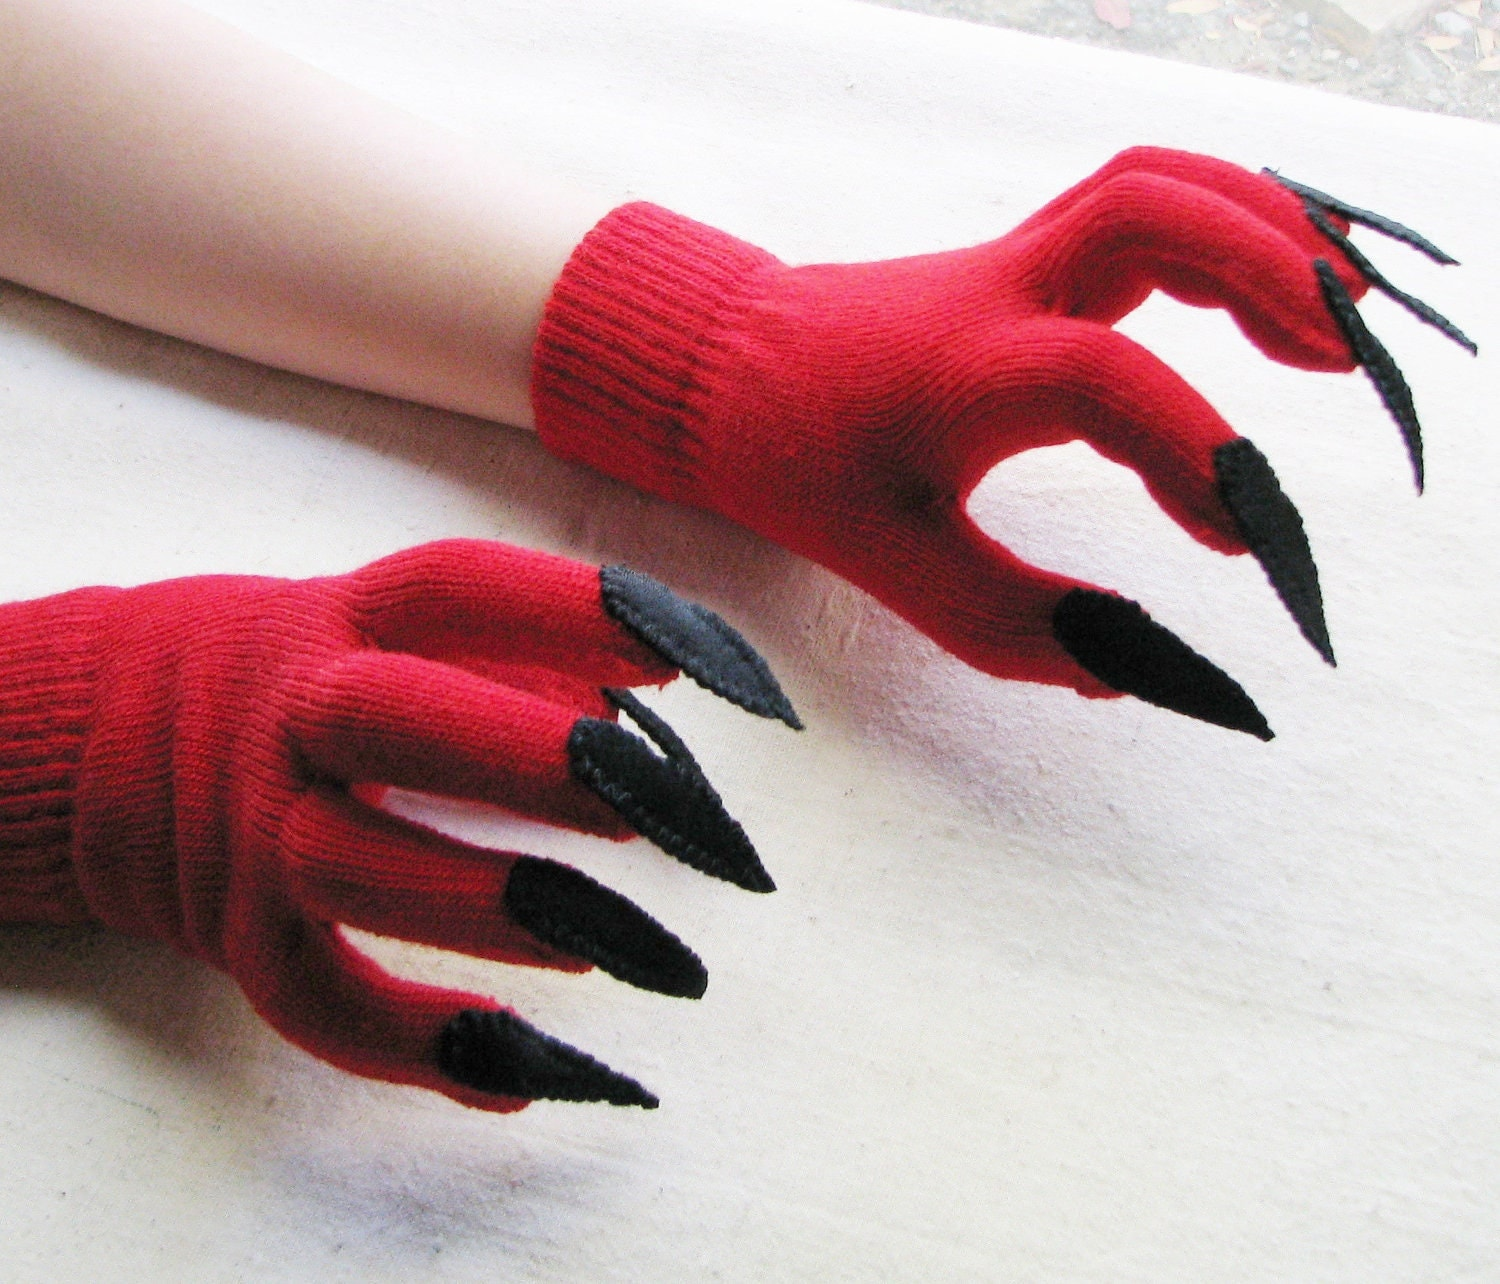 Gloves with claws red and black for Halloween costume or